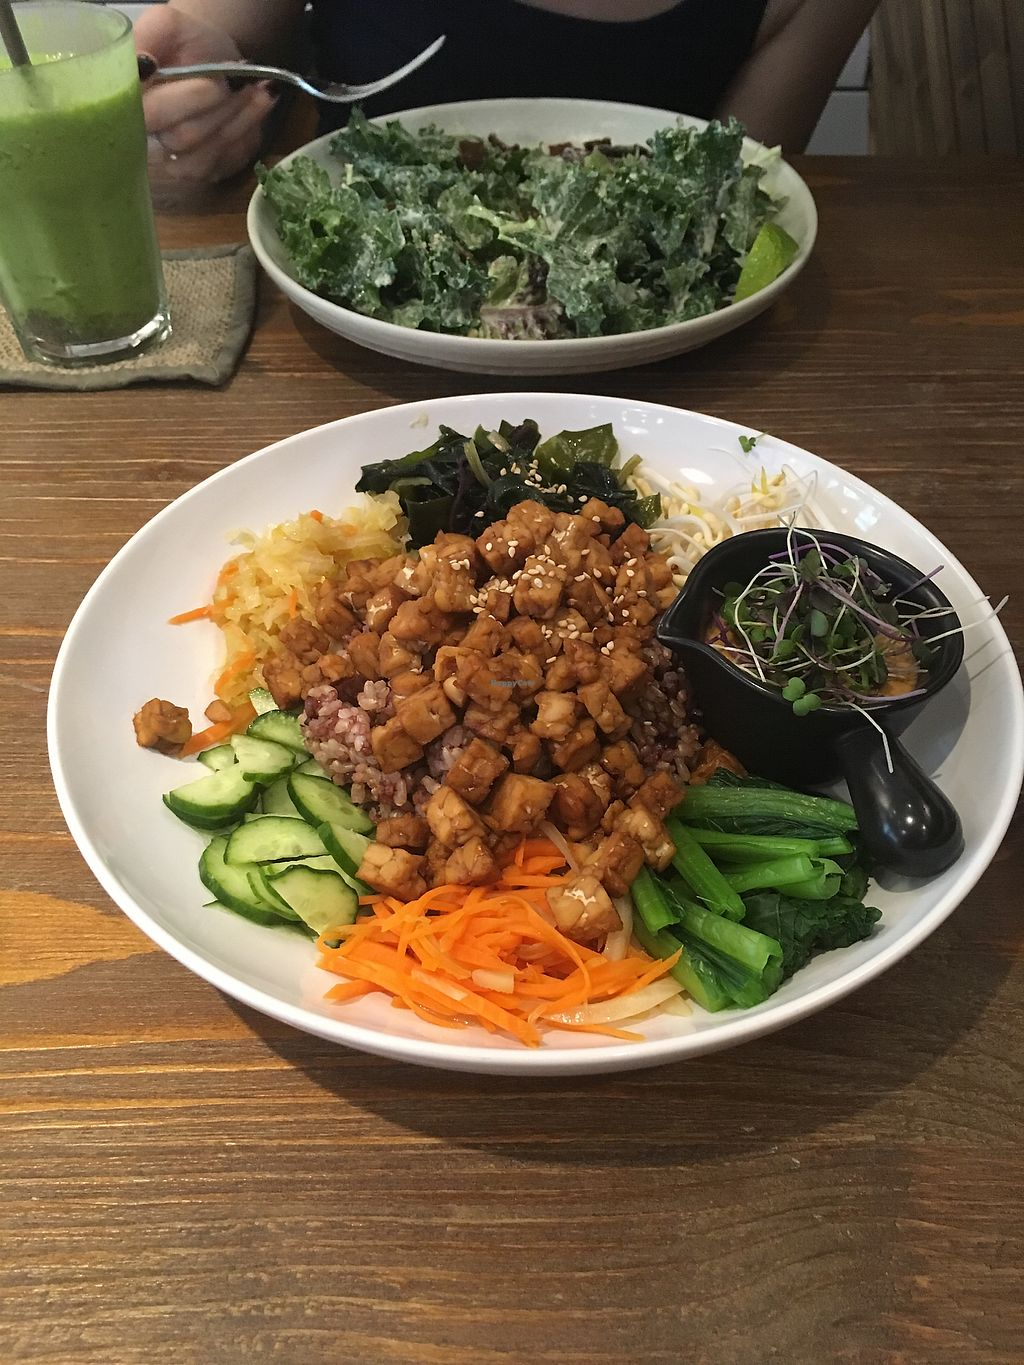 "Photo of Plants  by <a href=""/members/profile/Npczski"">Npczski</a> <br/>Green smoothie, kale Caesar, and bibimbap  <br/> January 3, 2018  - <a href='/contact/abuse/image/73952/342390'>Report</a>"